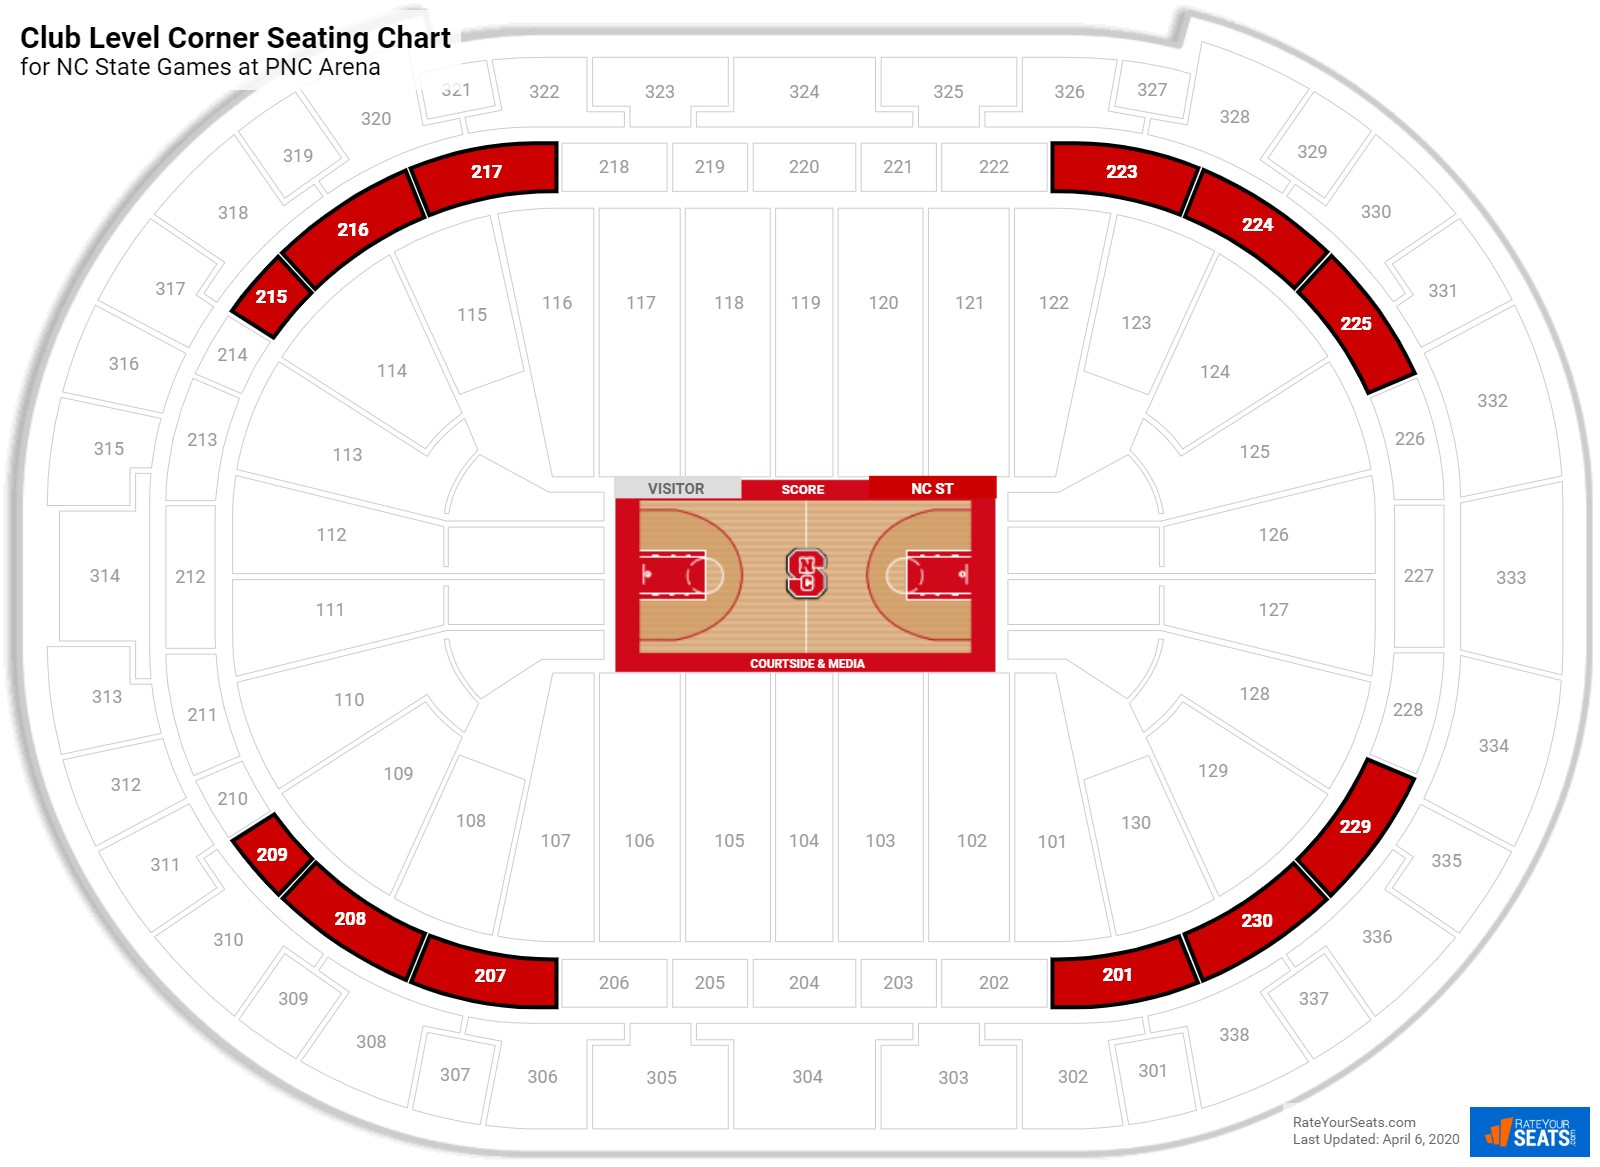 PNC Arena Club Level Corner seating chart